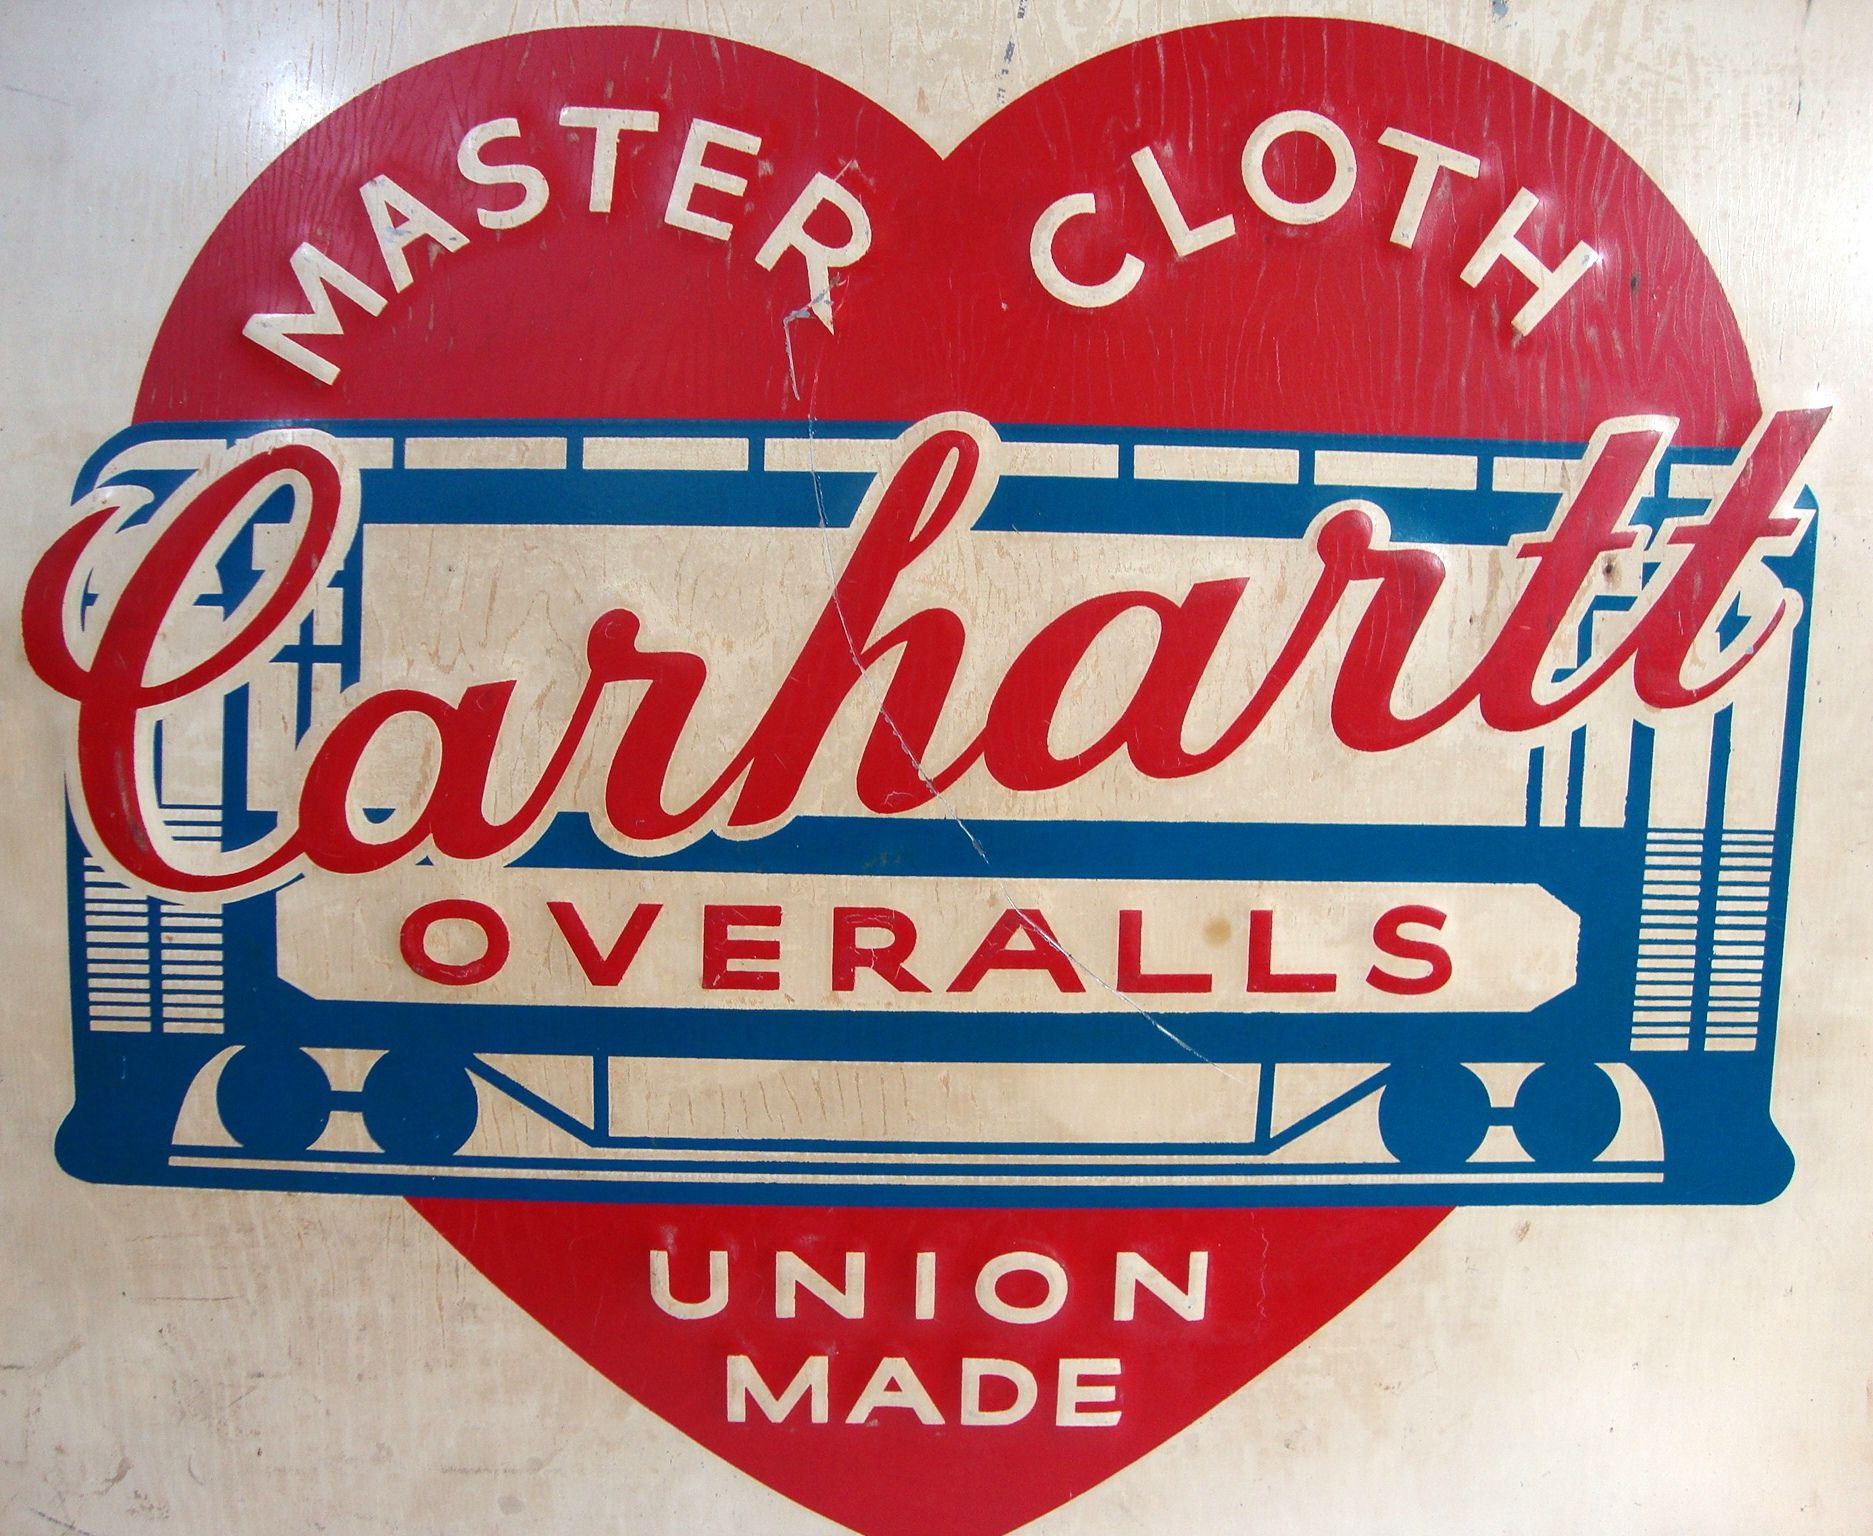 carhartt clothing s older master cloth union made label